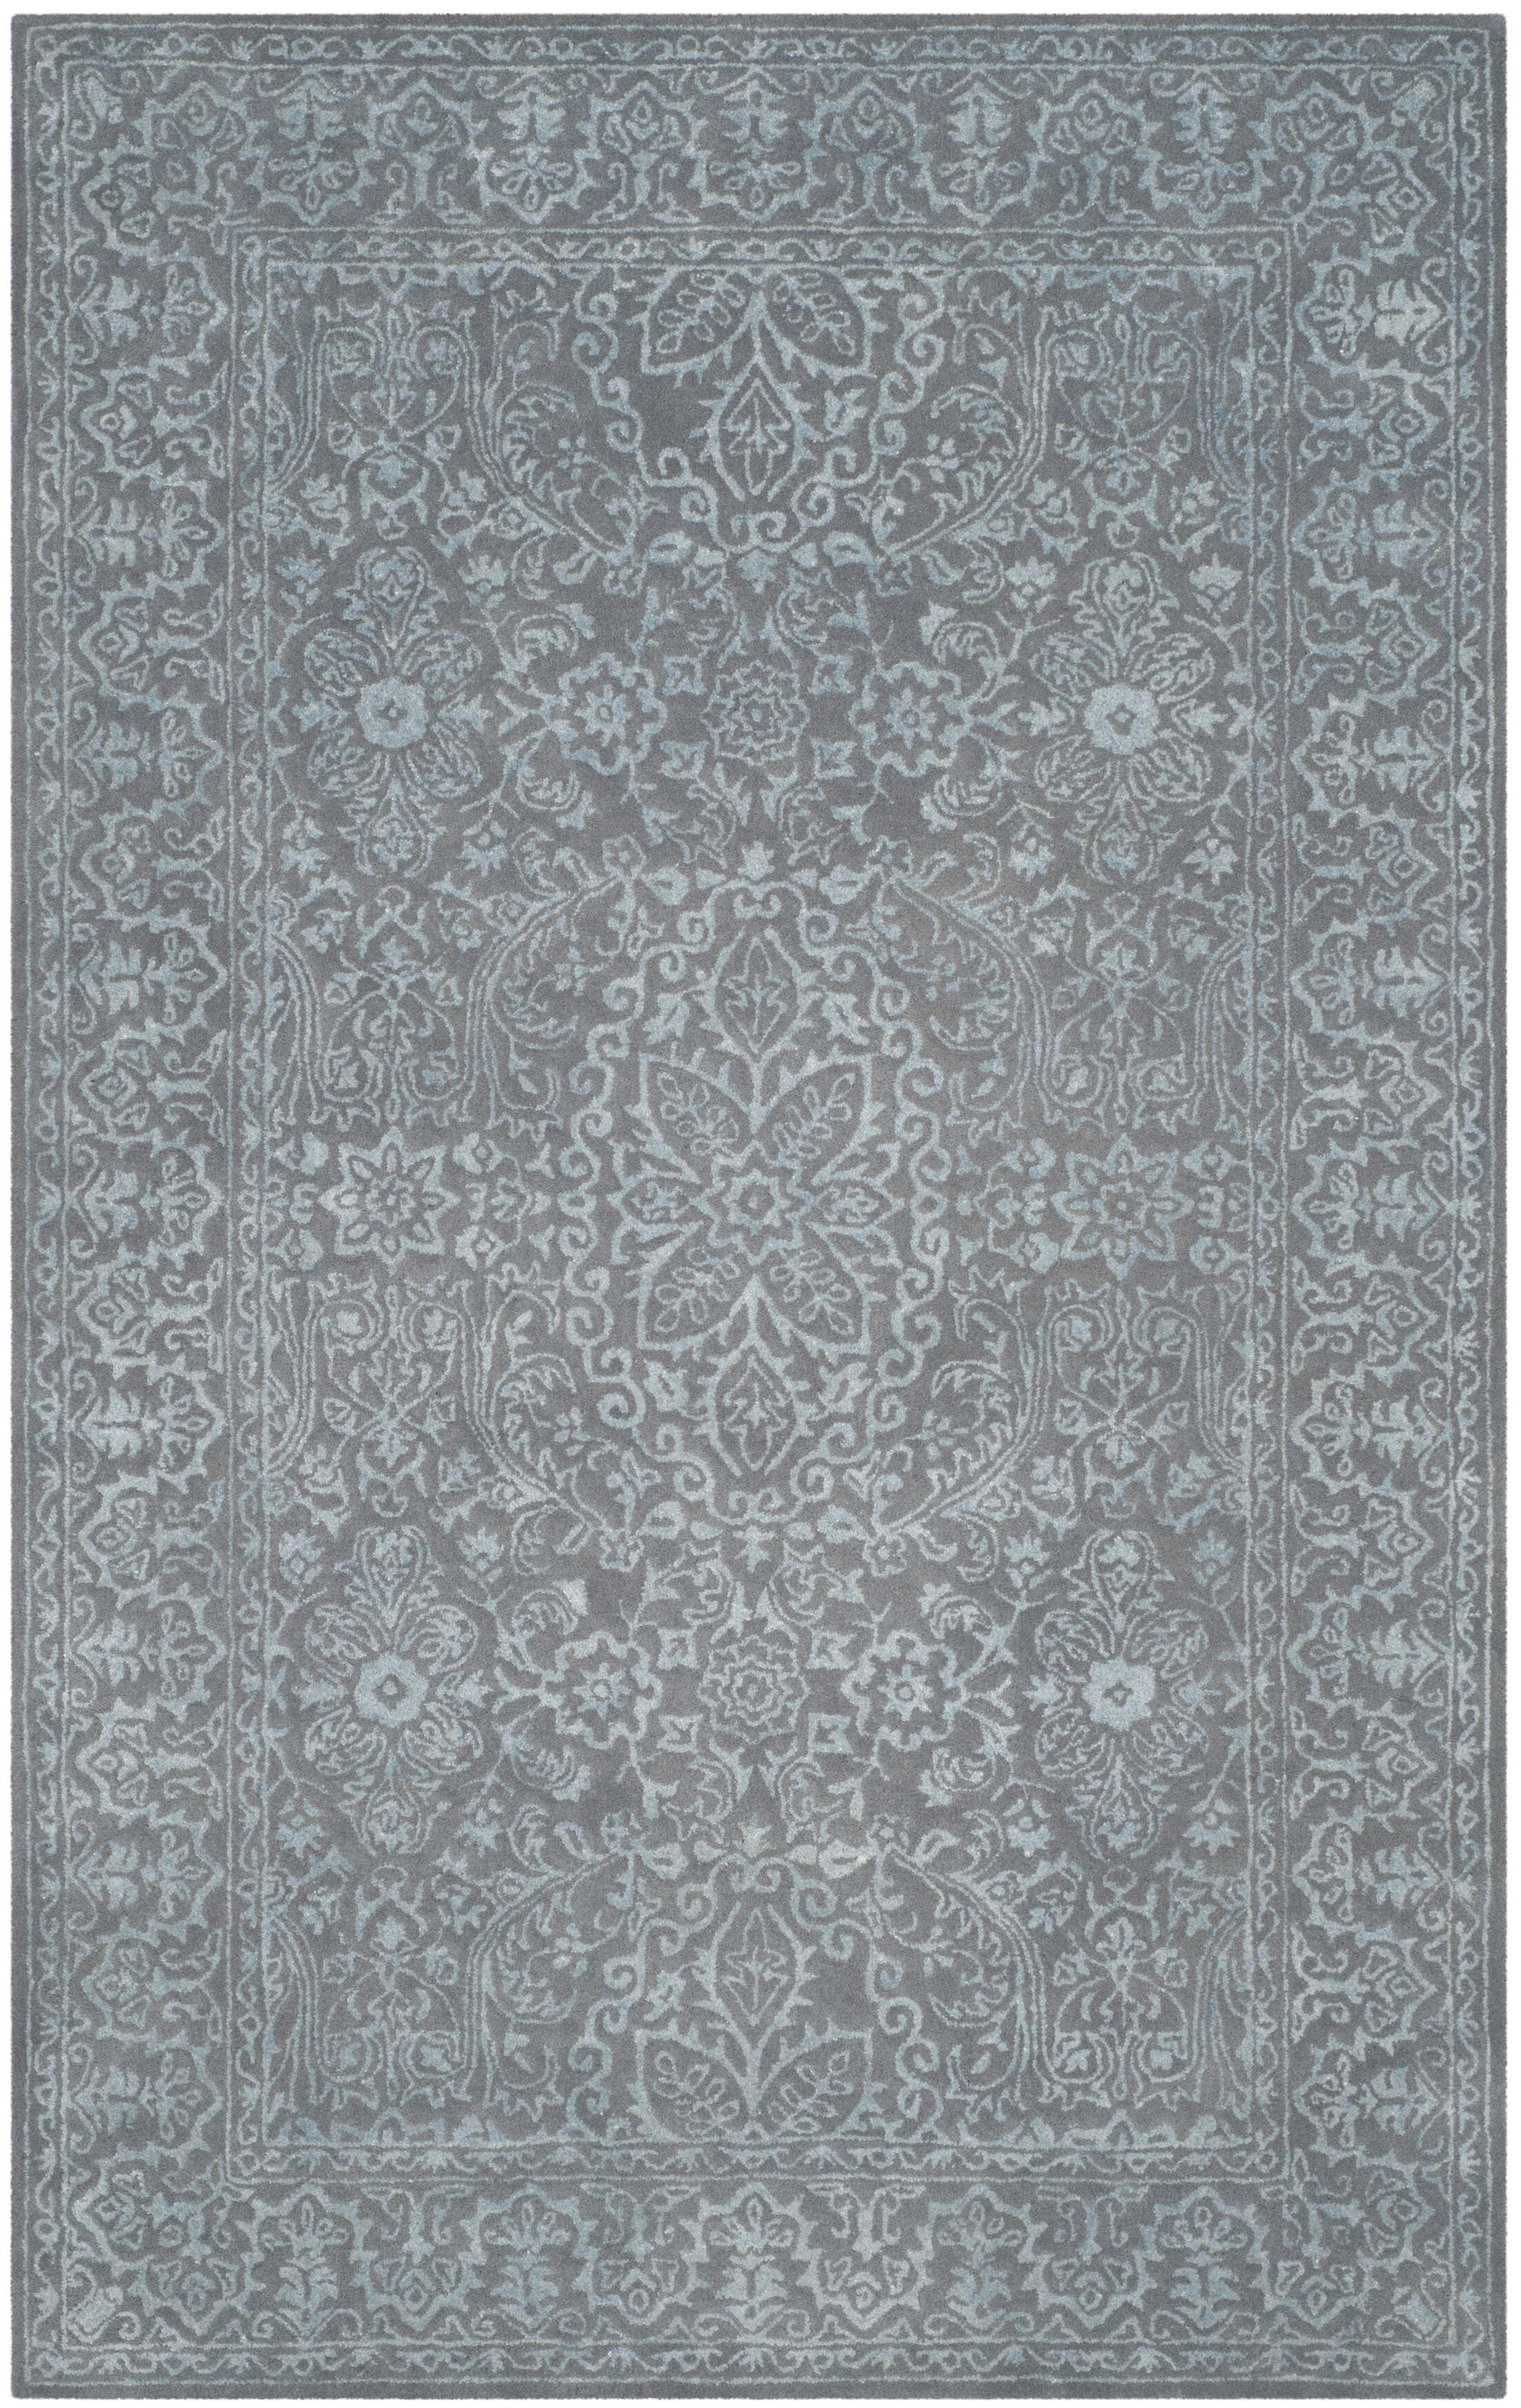 Wilkins Hand-Tufted Opal/Gray Area Rug Rug Size: Rectangle 5' x 8'